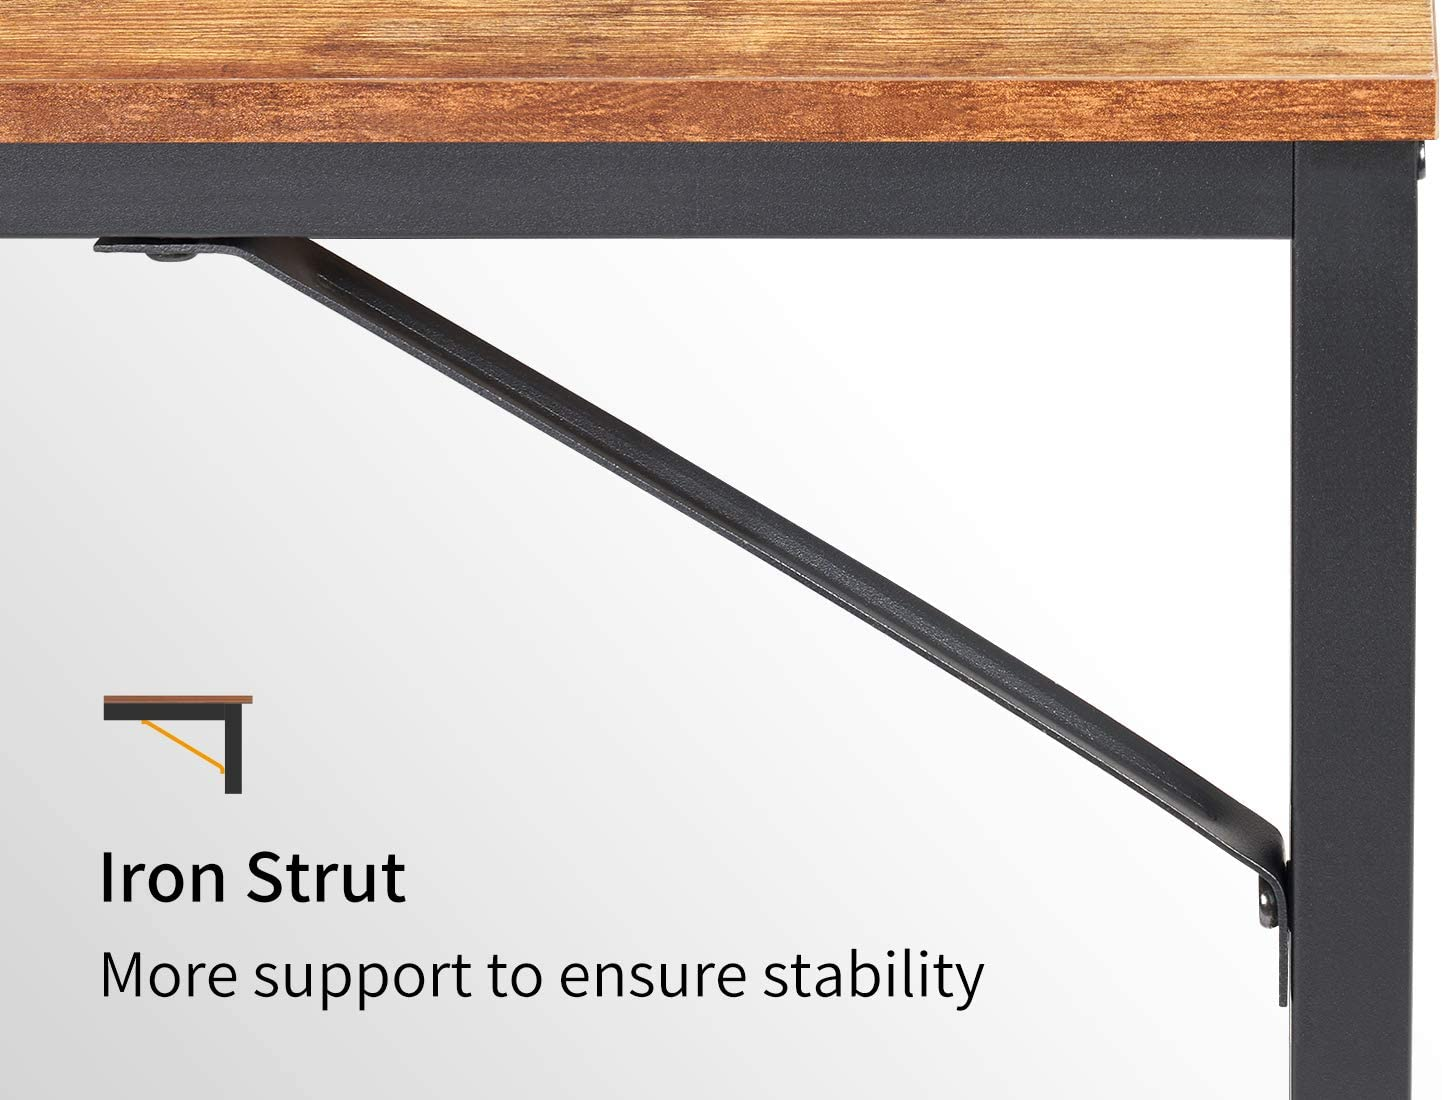 CubiCubi Computer Home Office Desk, 47 Inch Small Desk Study Writing Table with Storage Shelves, Modern Simple PC Desk with Splice Board, Rustic Brown and Black: Kitchen & Dining